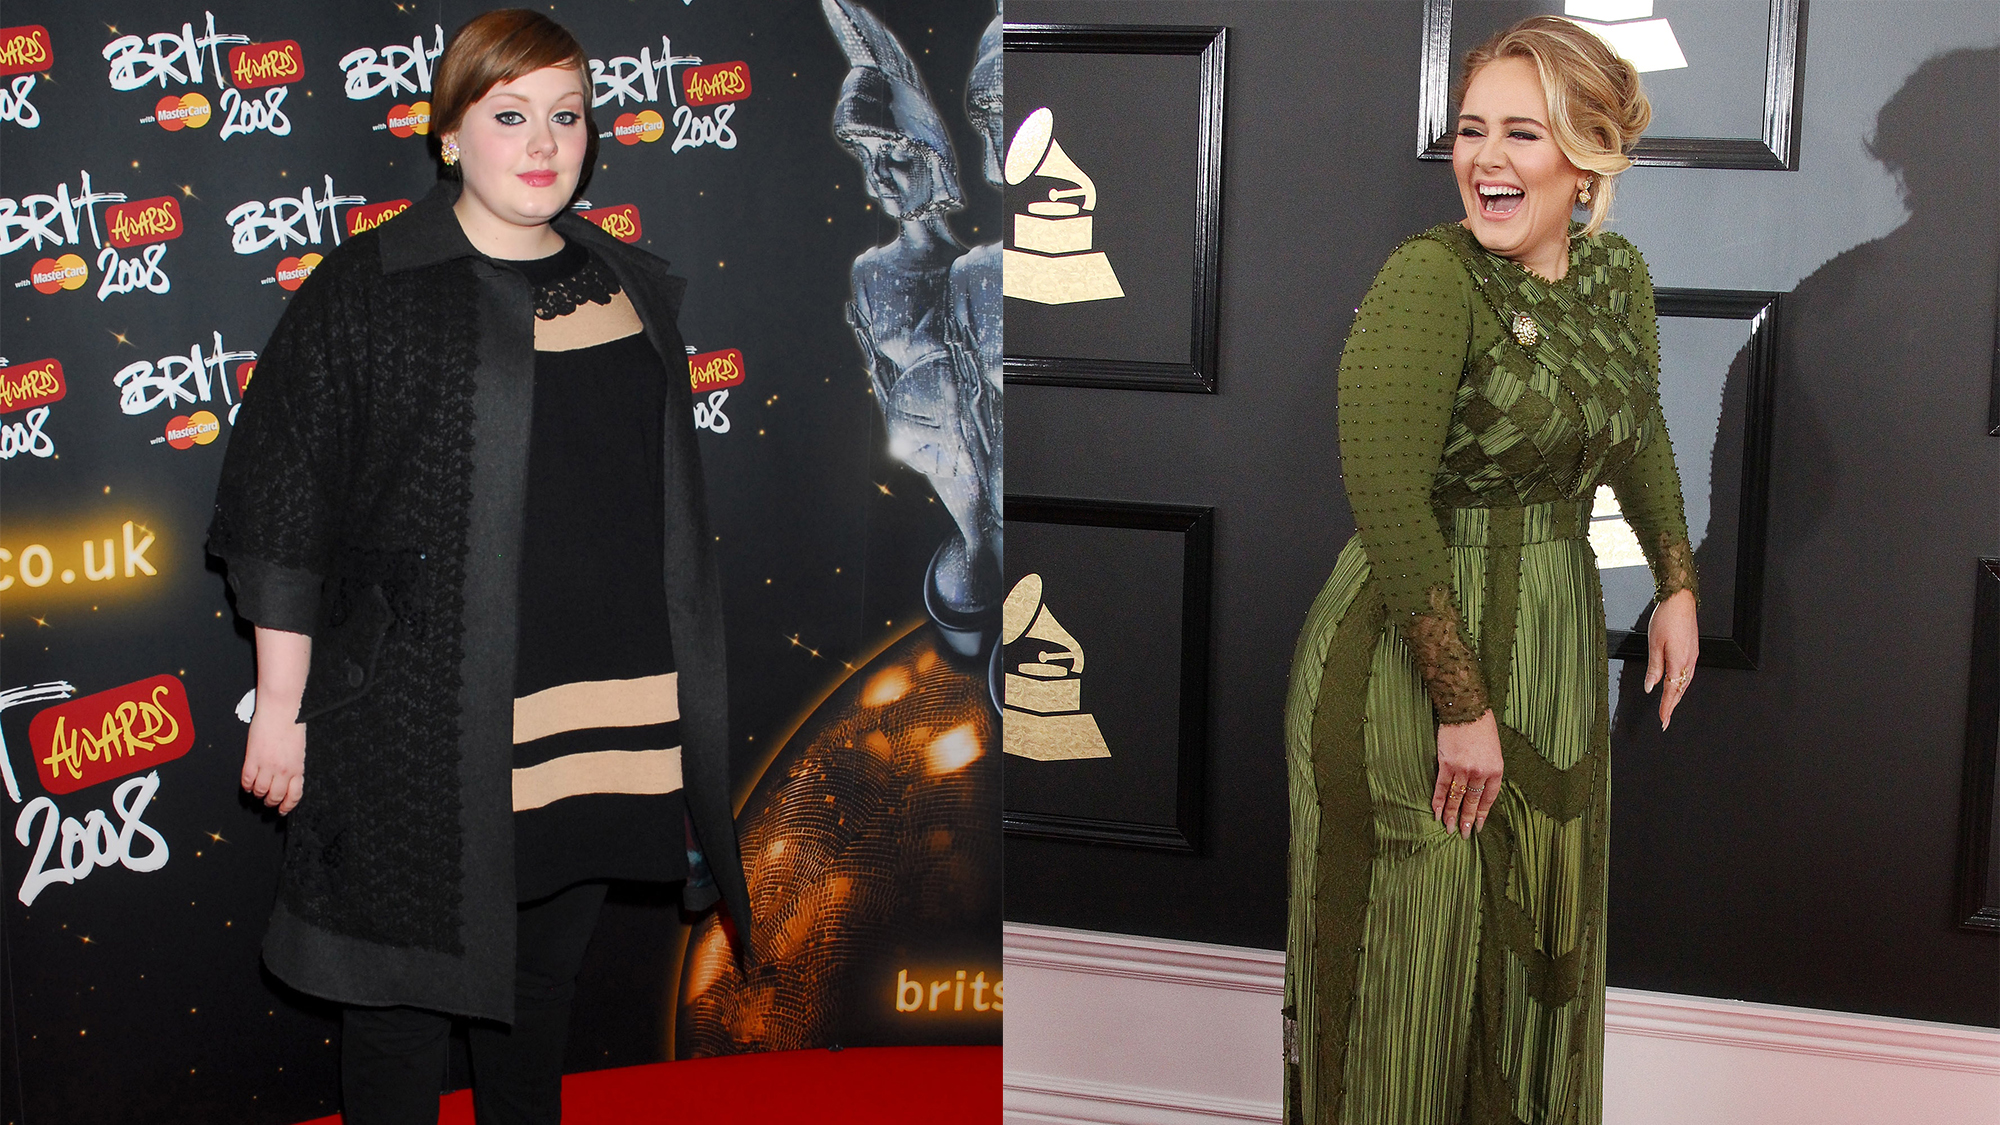 Adele reveals the one thing she cut out of her diet to get the body she has now